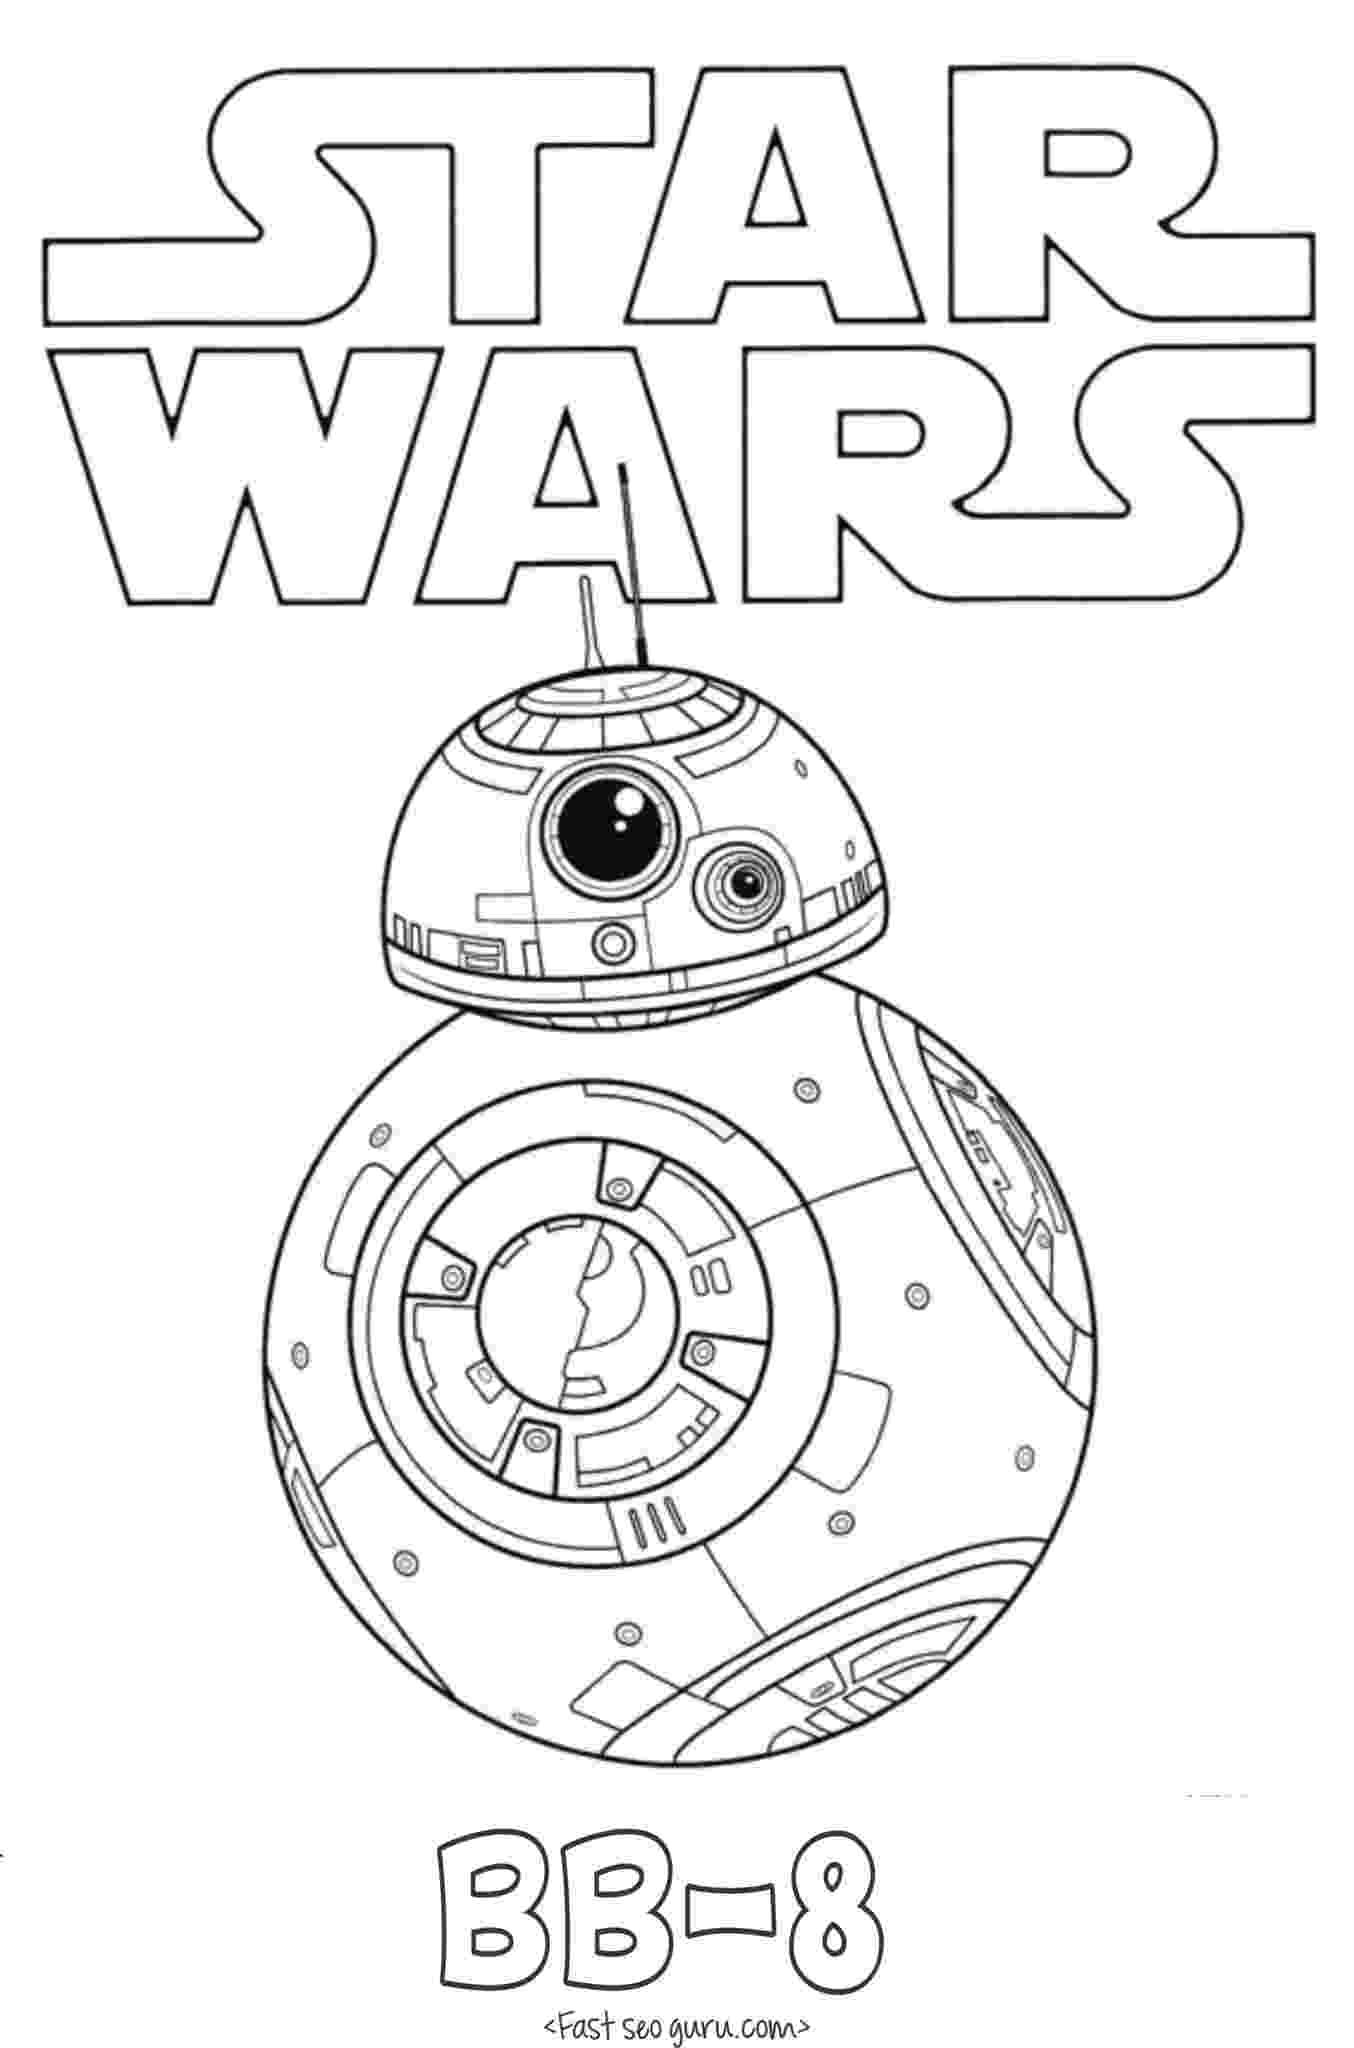 star wars print out coloring pages fighting darth vader coloring pages hellokidscom print star out coloring pages wars